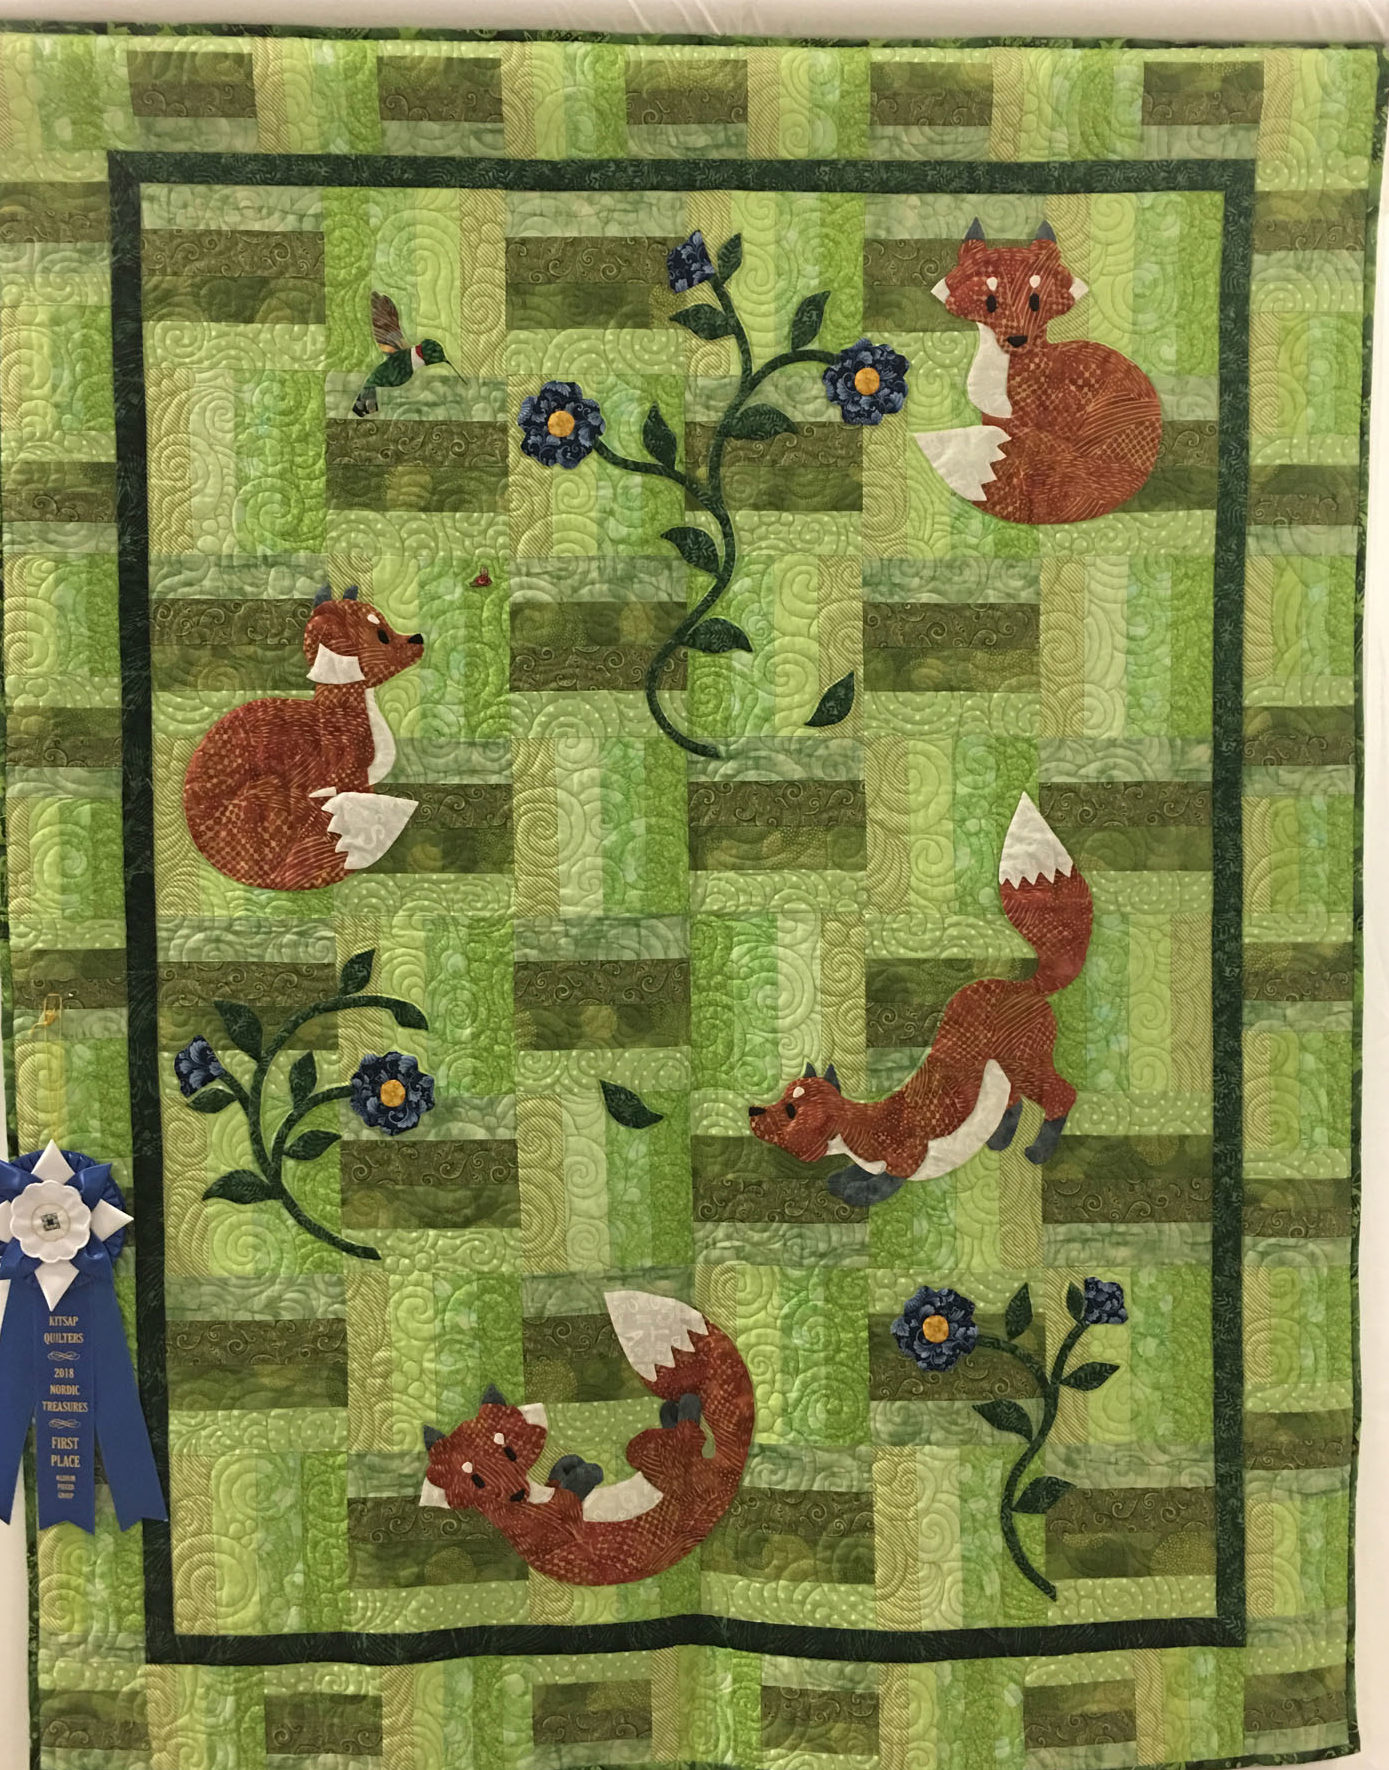 "614 ""Quilt for Kaci"" made by Sharon Broom, quilted by Rainy Day Quilts, 1st place Medium Group Quilt, 2018 Kitsap Quilt Show"